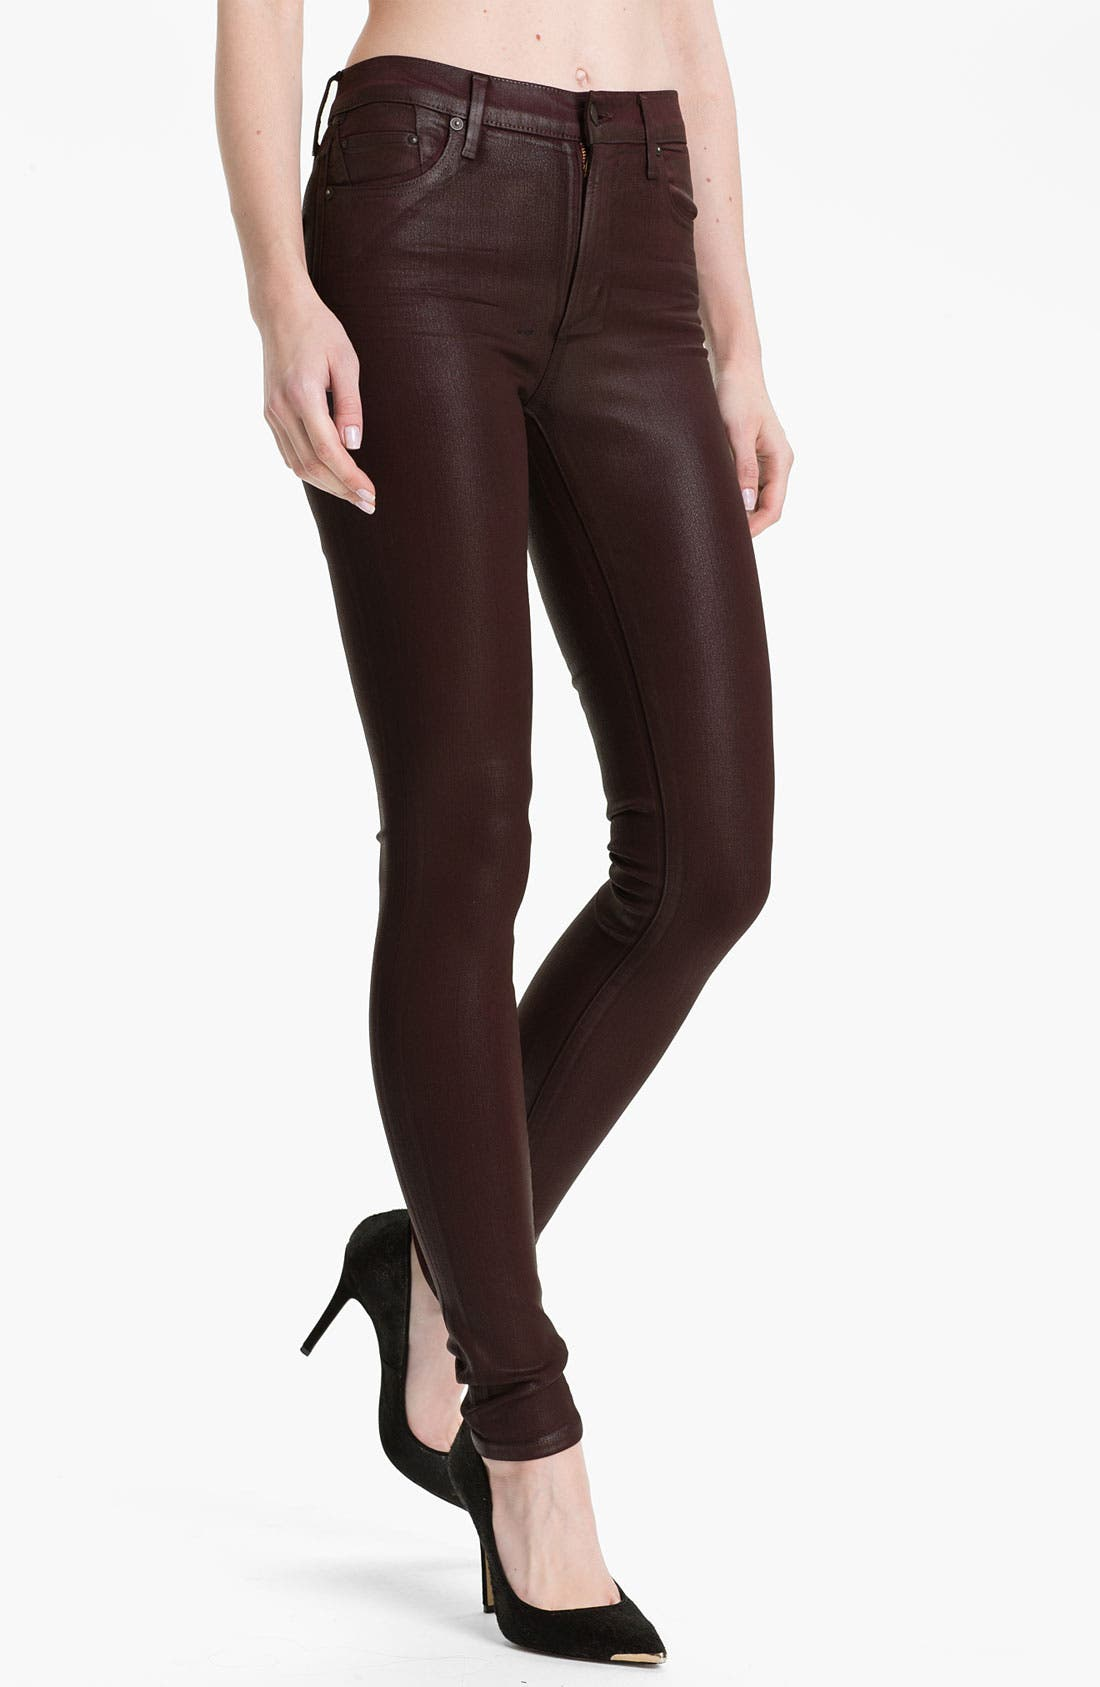 Alternate Image 1 Selected - Citizens of Humanity 'Rocket' Skinny Leatherette Jeans (Lacquer Red)